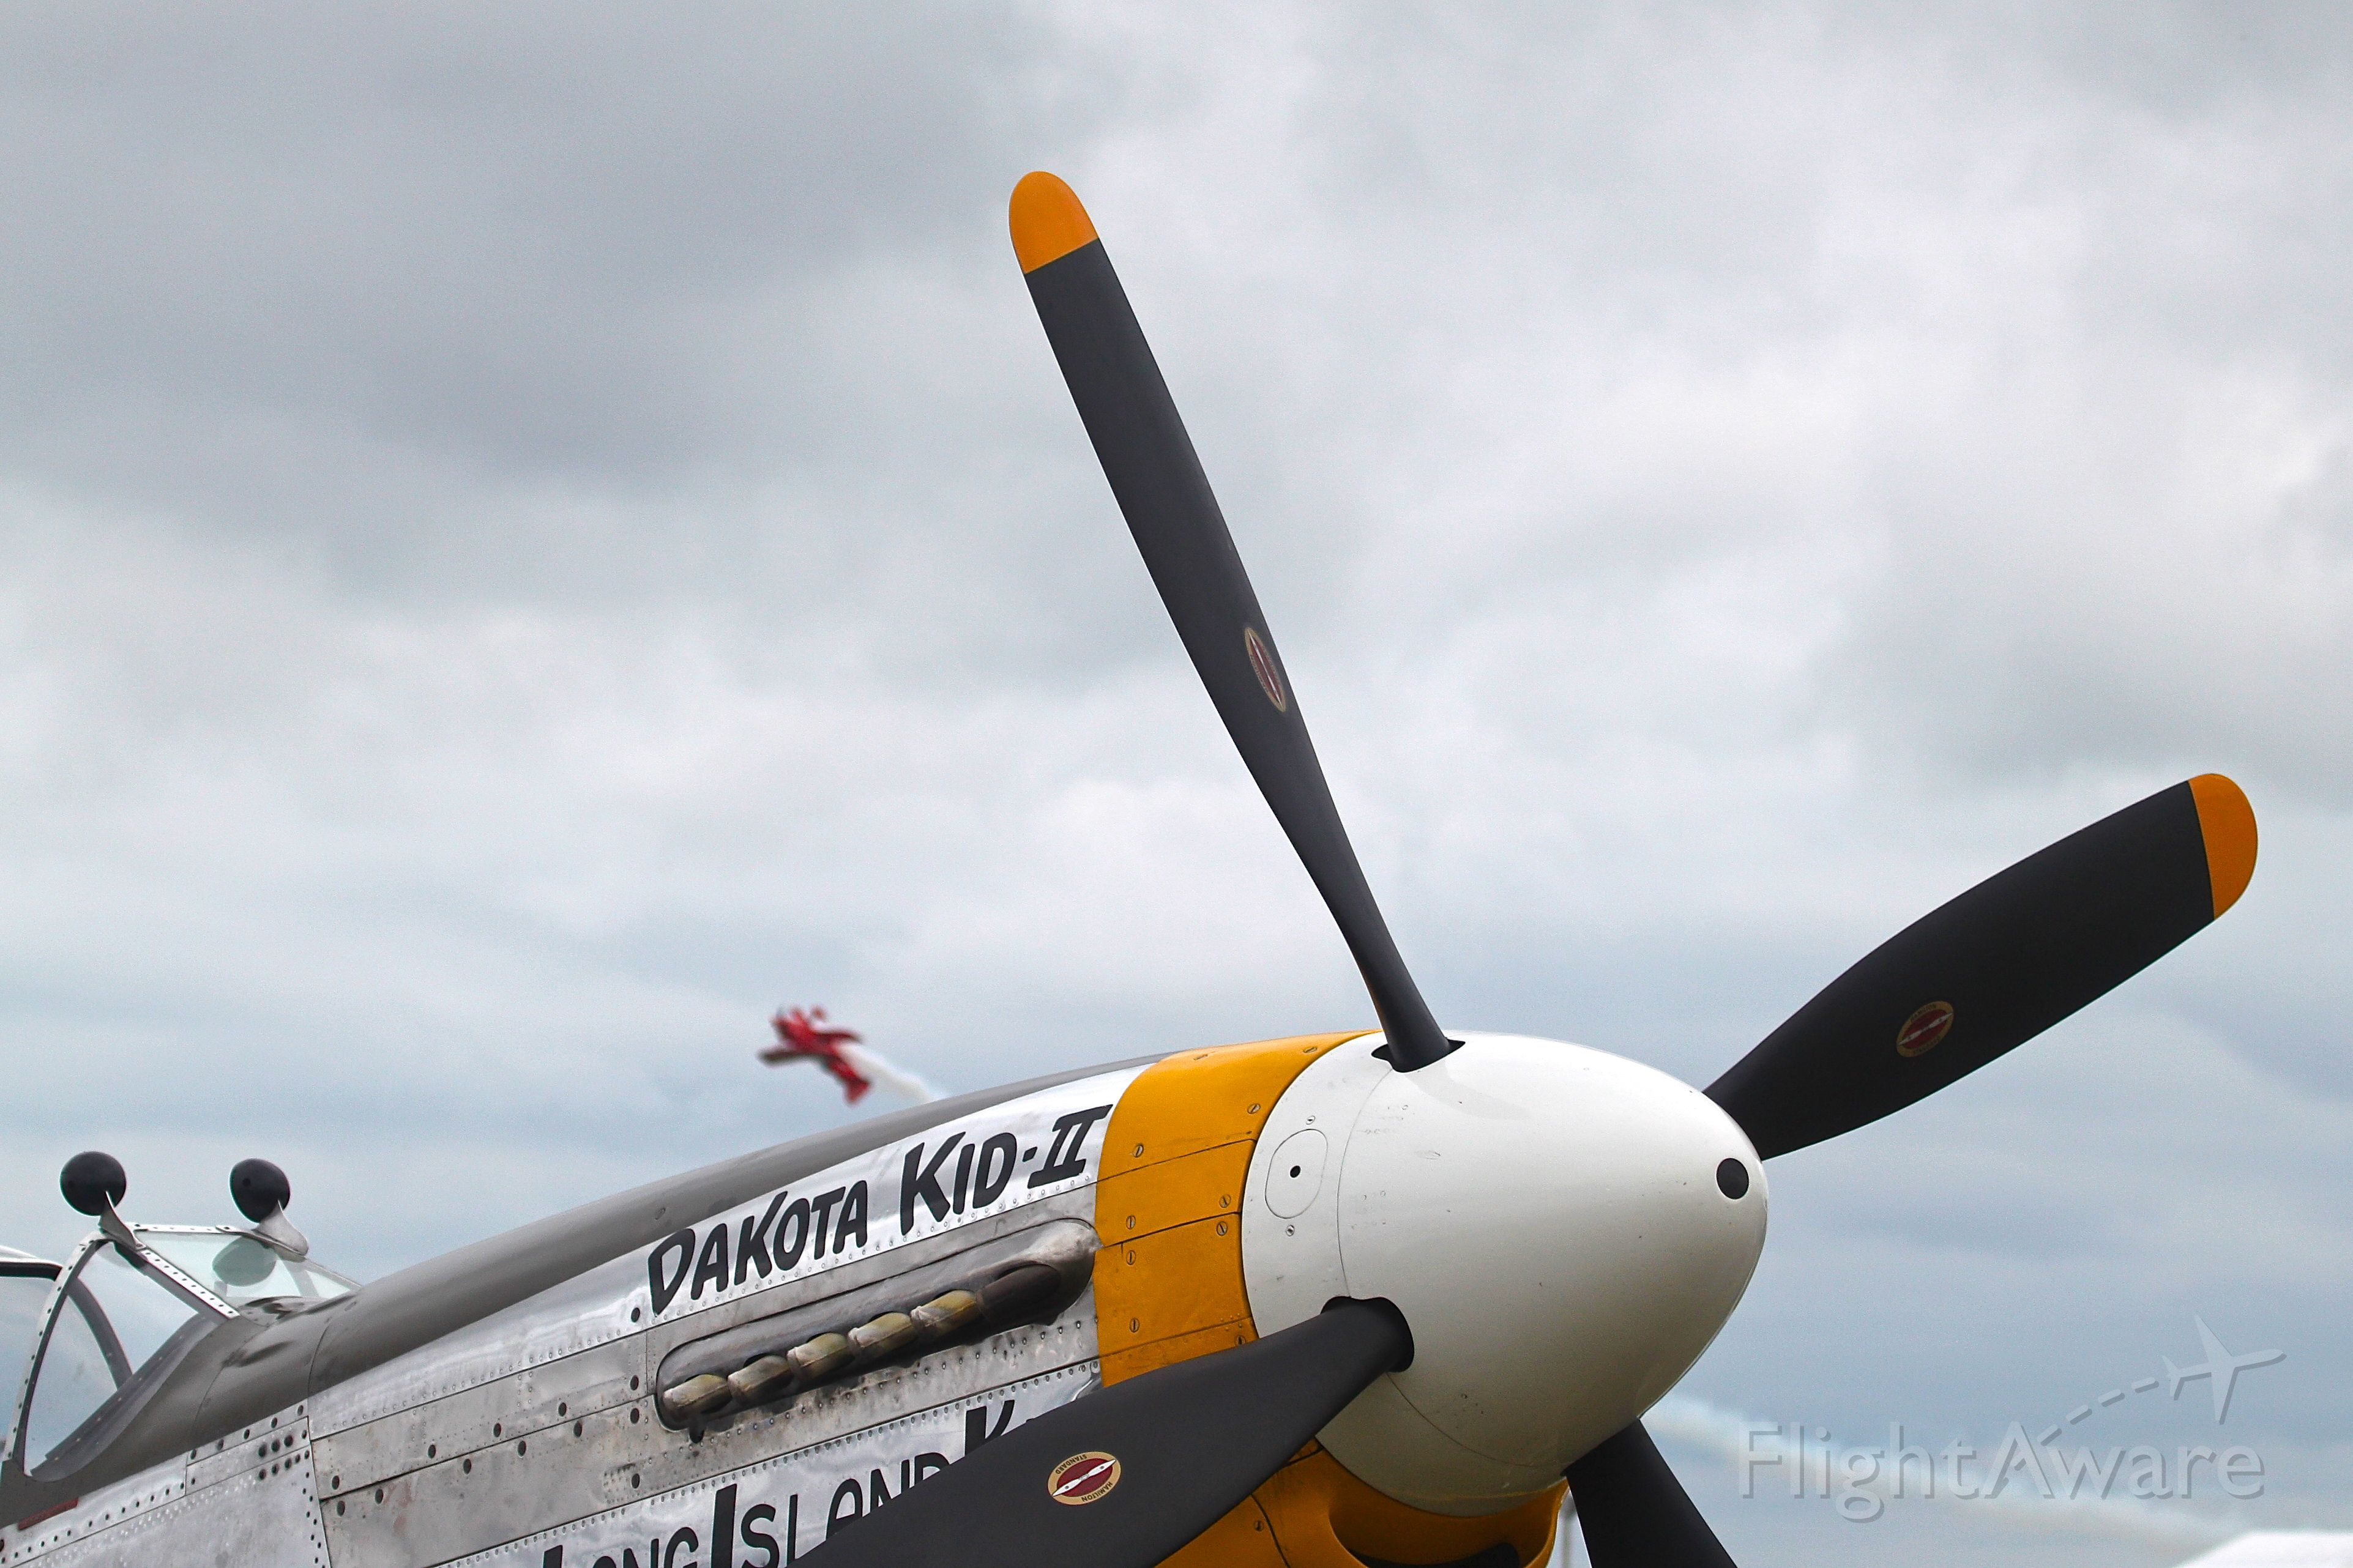 North American P-51 Mustang (N151HR) - P-51 parked at Oshkosh while Sean Tucker performs in the background